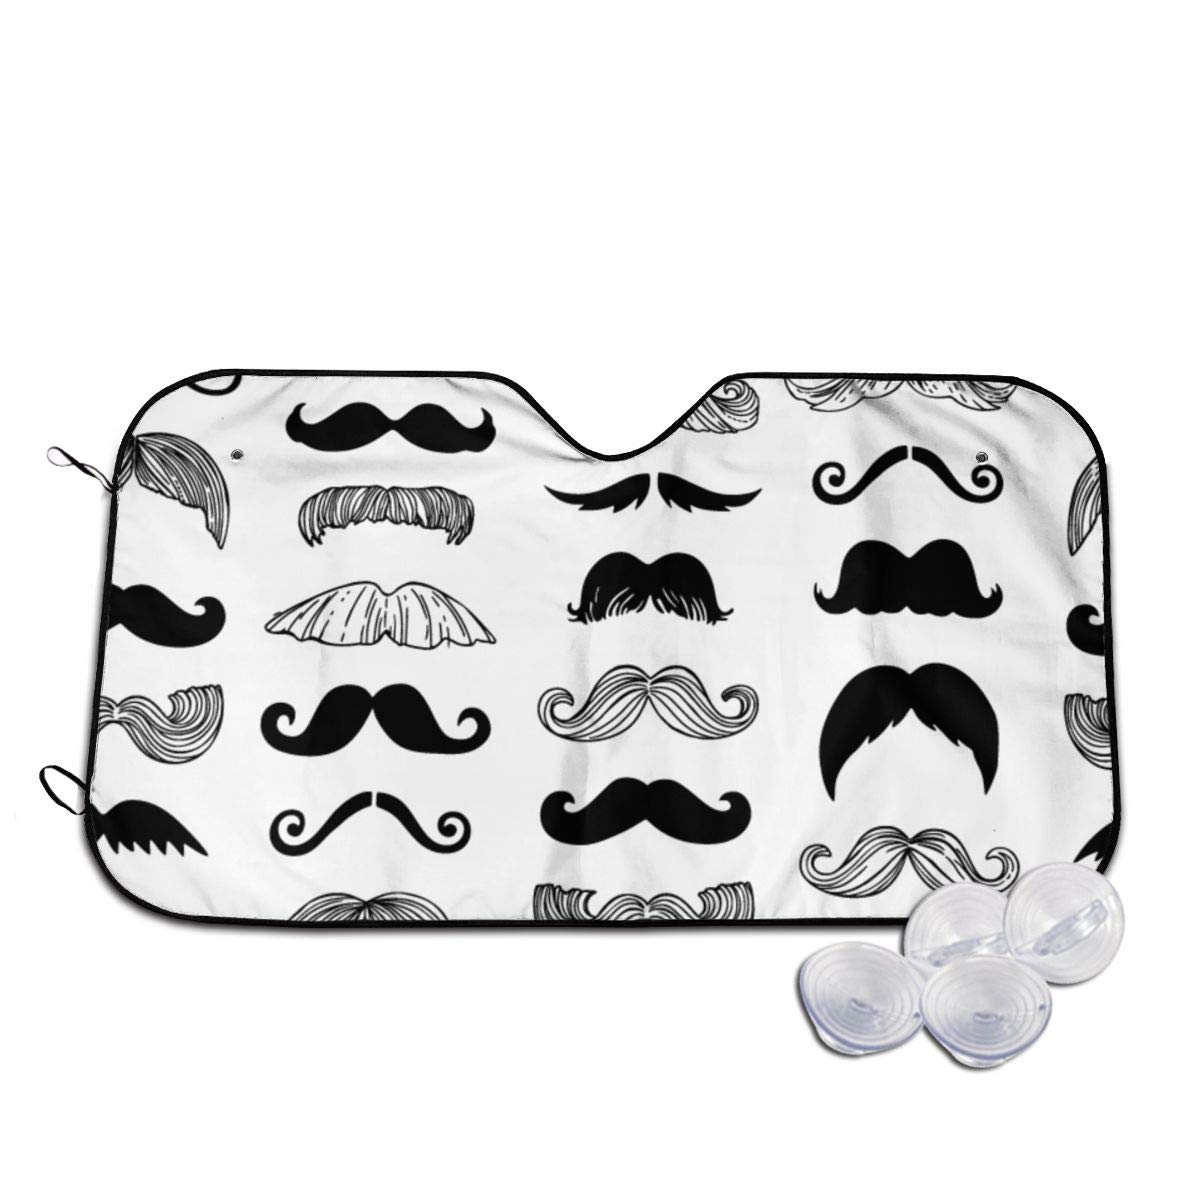 Moustaches Brand new Windshields Sun Shade Long 3D Lasting Printed Manufacturer OFFicial shop